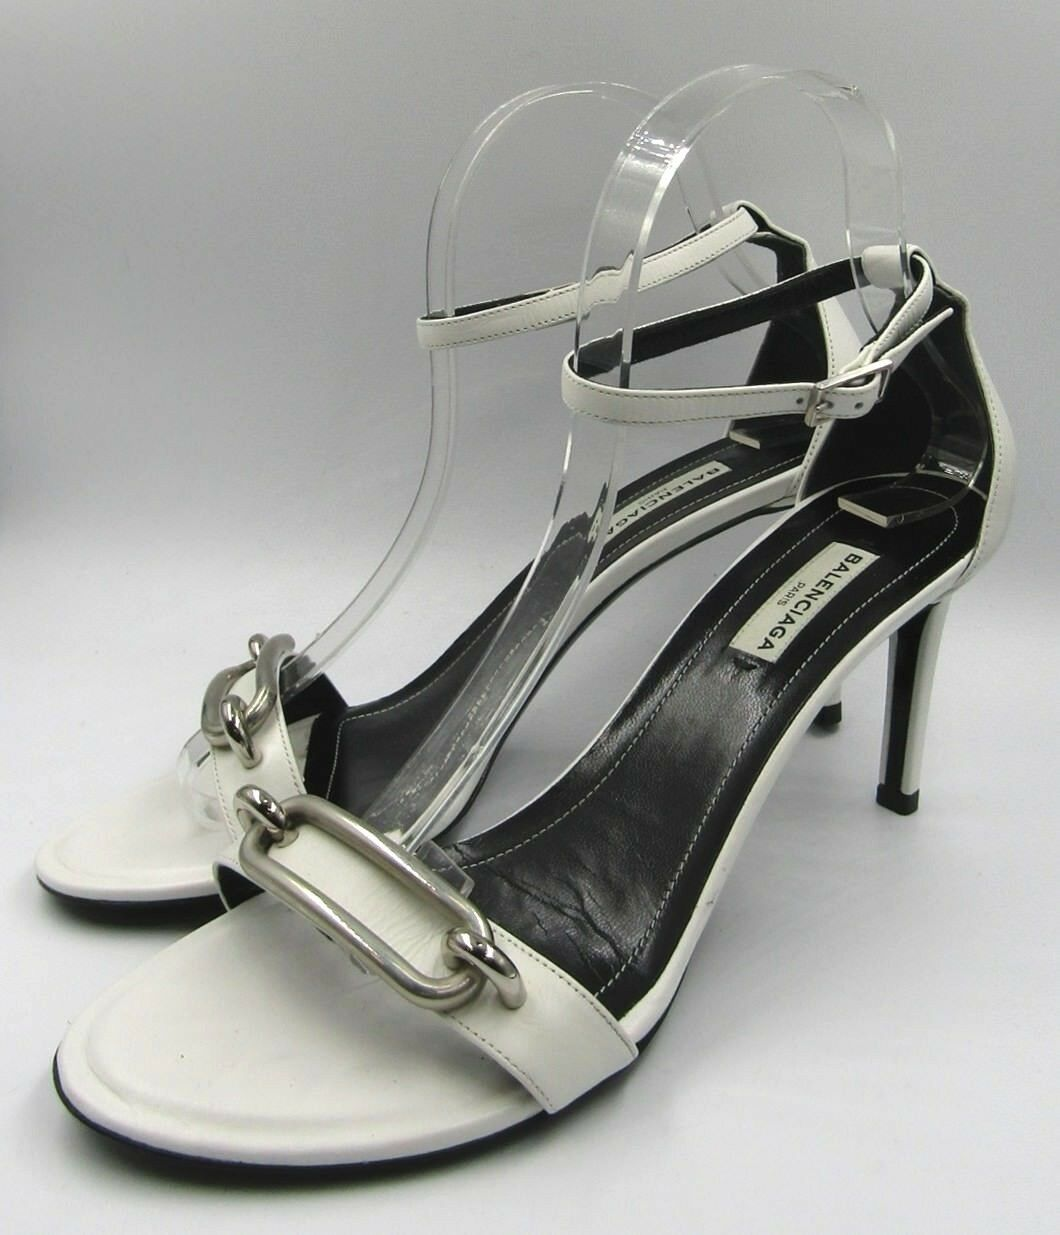 New Balenciaga Veau Lisse Maillon Sandals Heel blanc Leather Leather Leather argent Buckle 8.5 188ffd